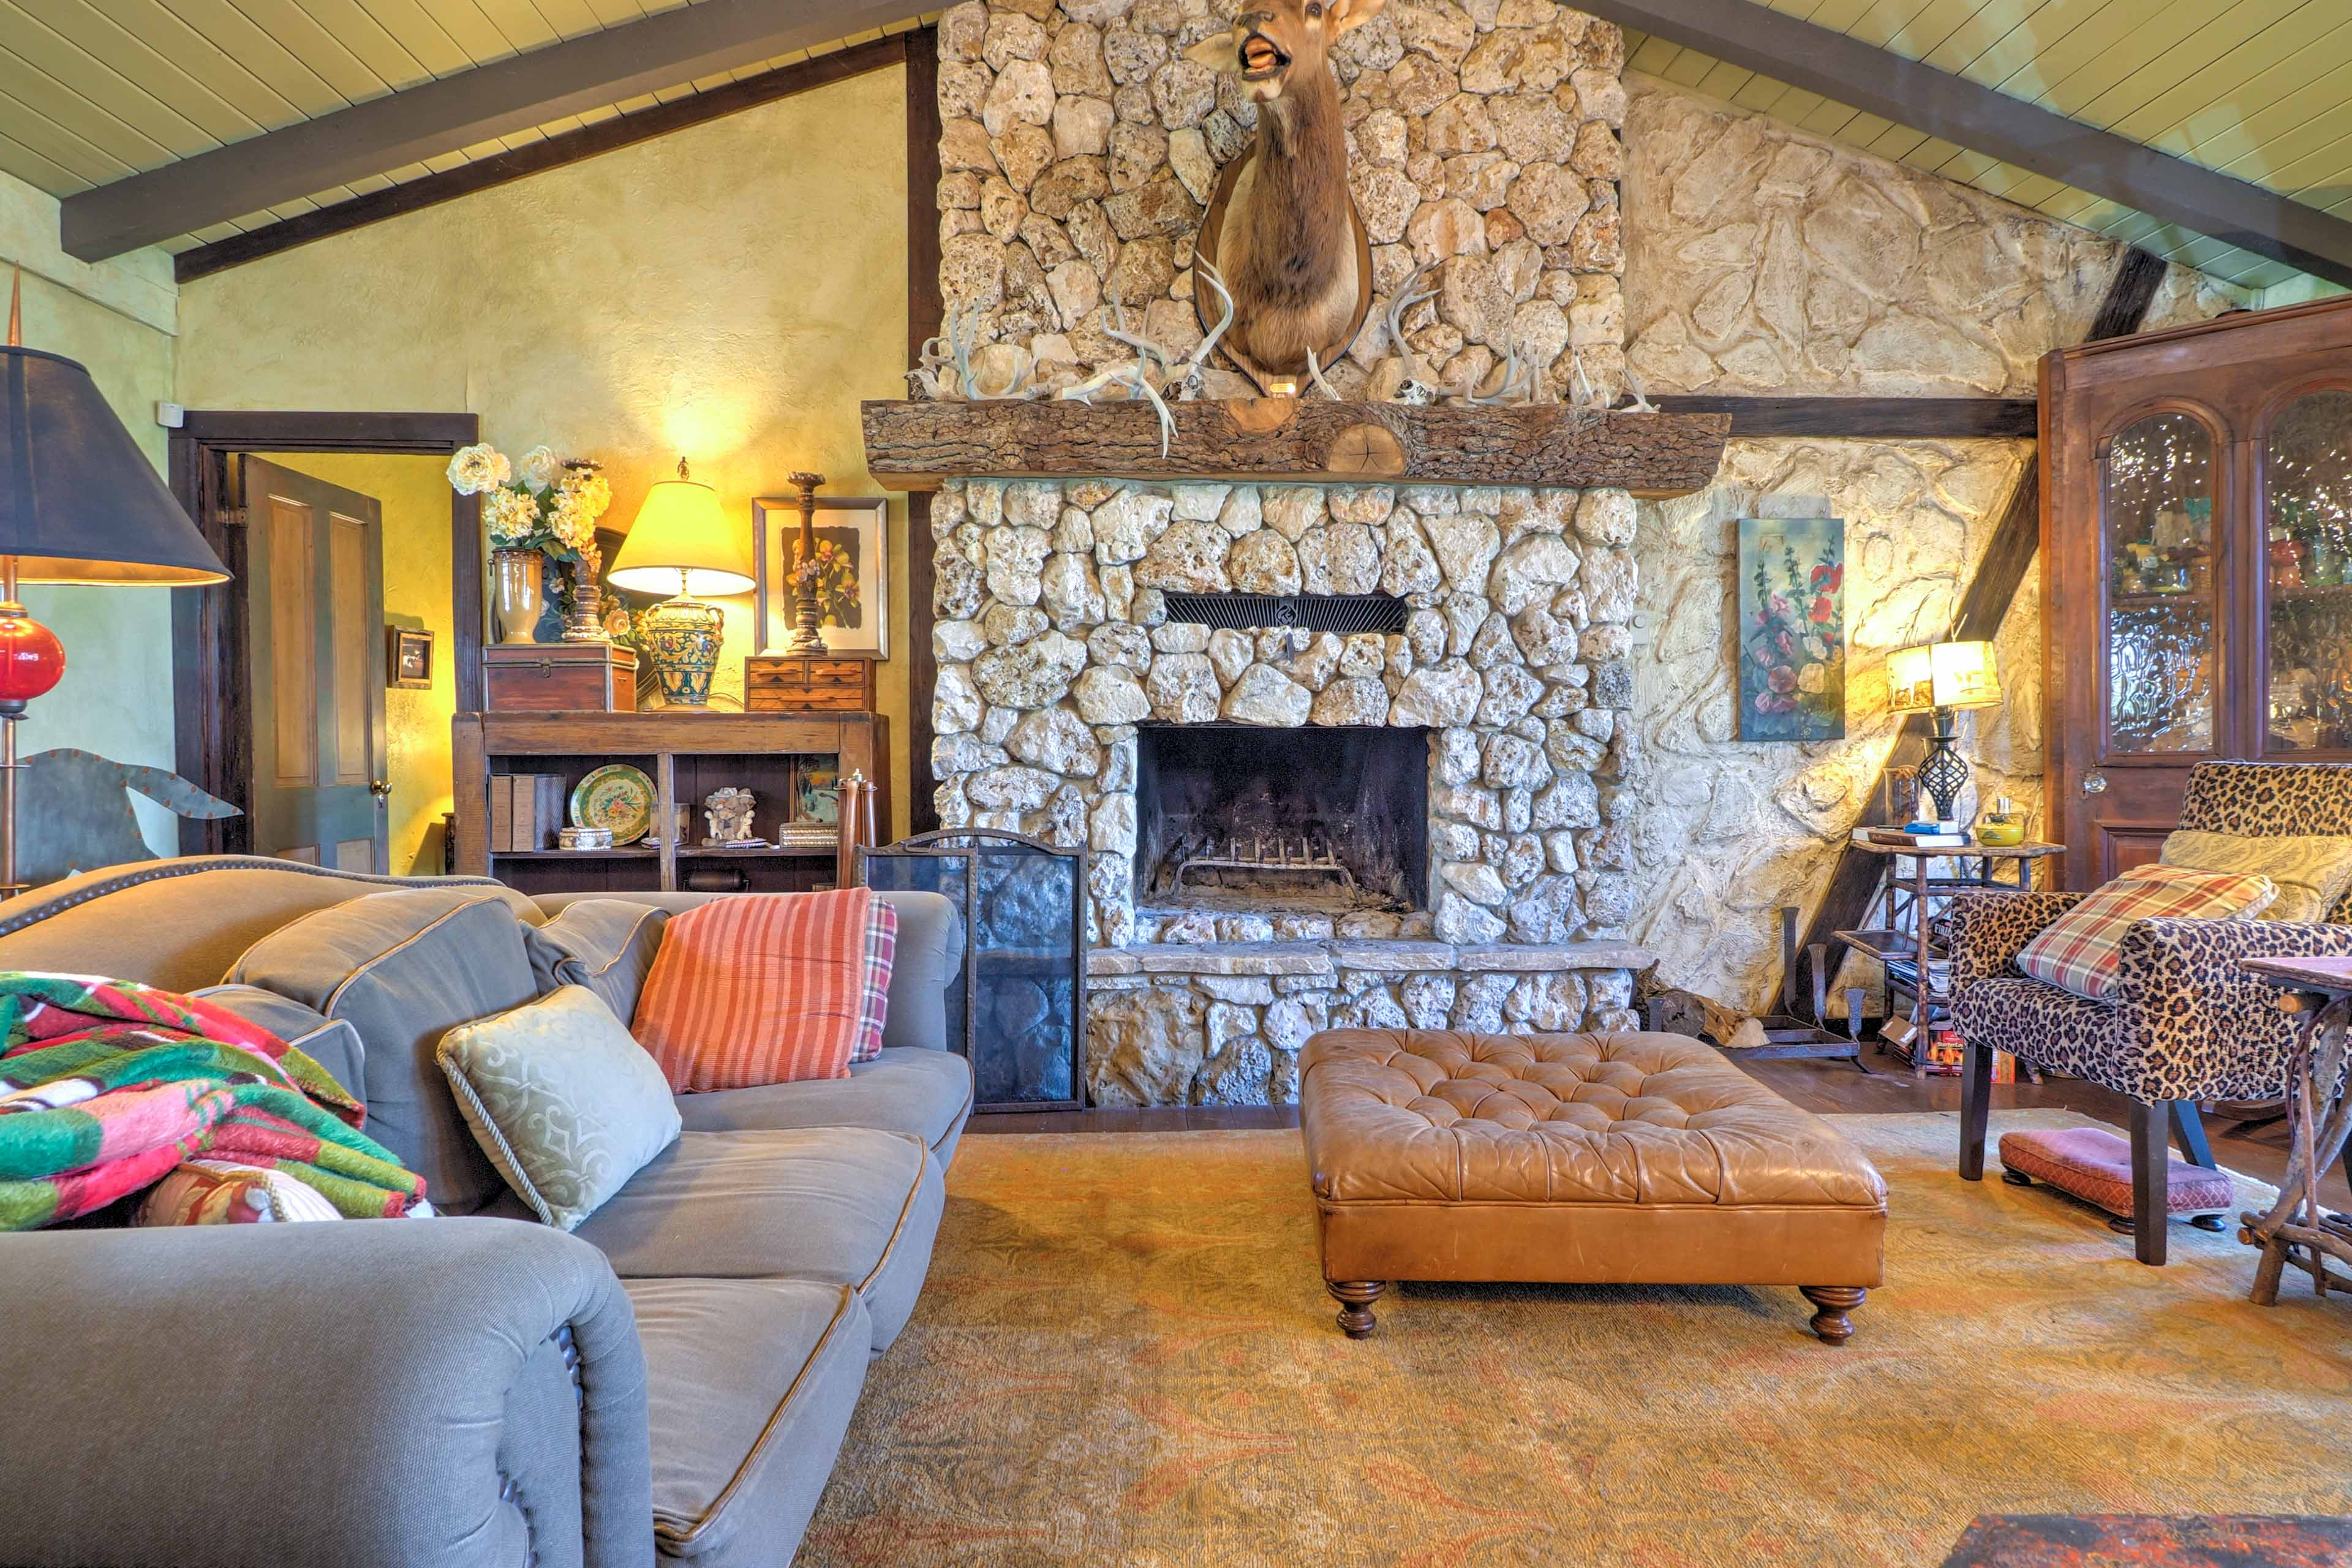 When its cold outside, warm up next to 1 of the 2 stone wood-burning fireplaces.